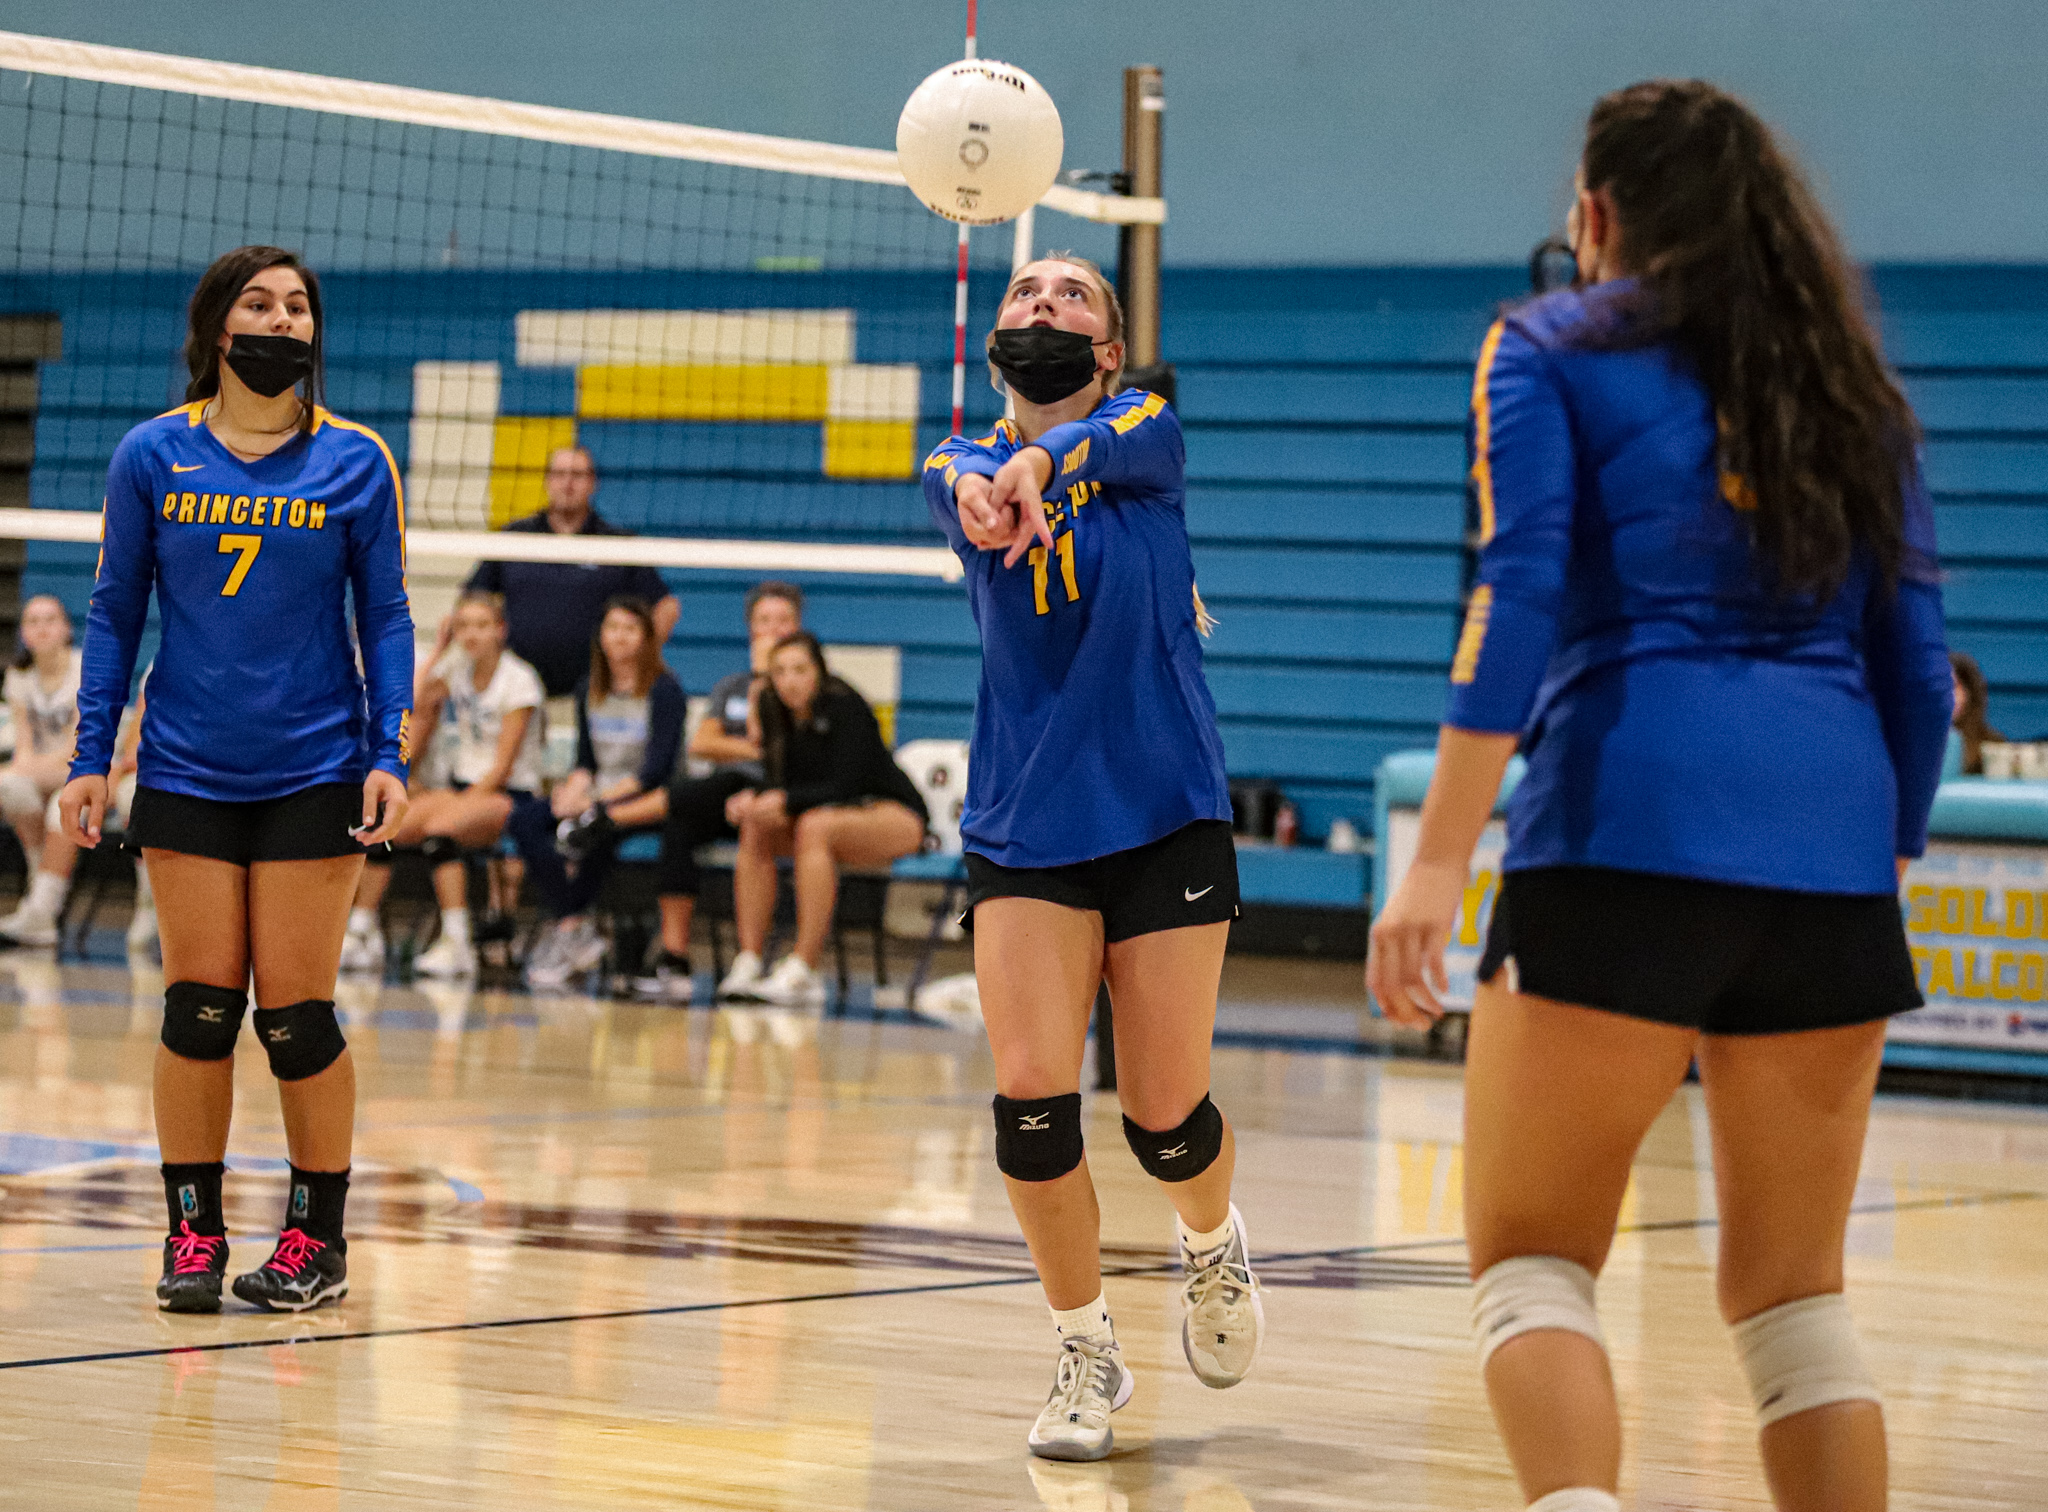 Volleyball: Princeton Takes On C.B. Aycock (PHOTO GALLERY)